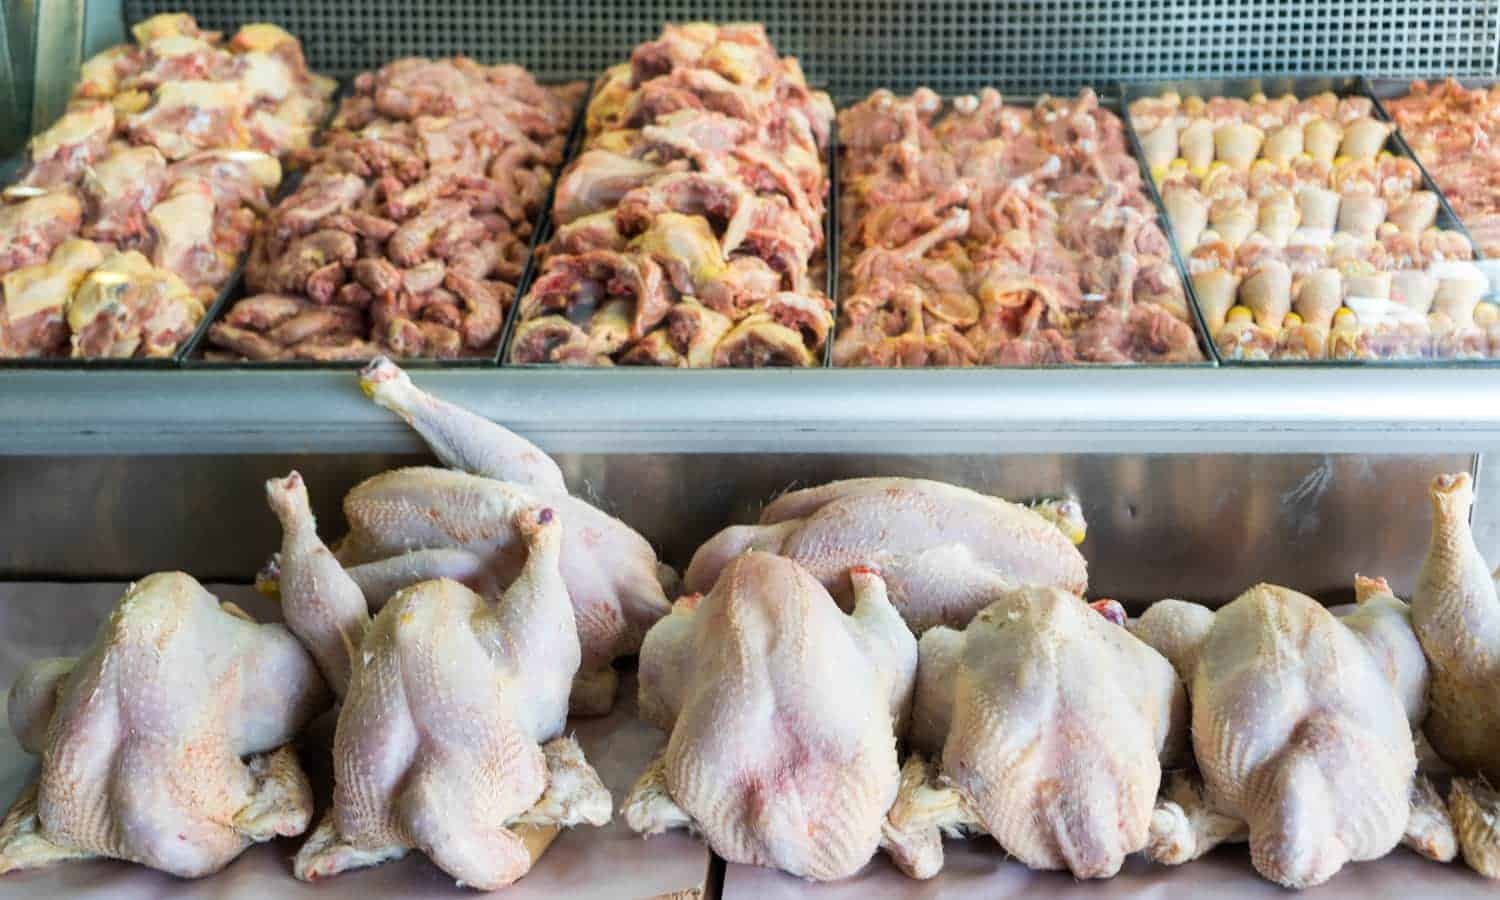 In Nairobi, Kenya, one small company is making it easier for low-income families to get adequate protein in their diets via a simple innovation: selling individual pieces of chicken instead of whole birds.